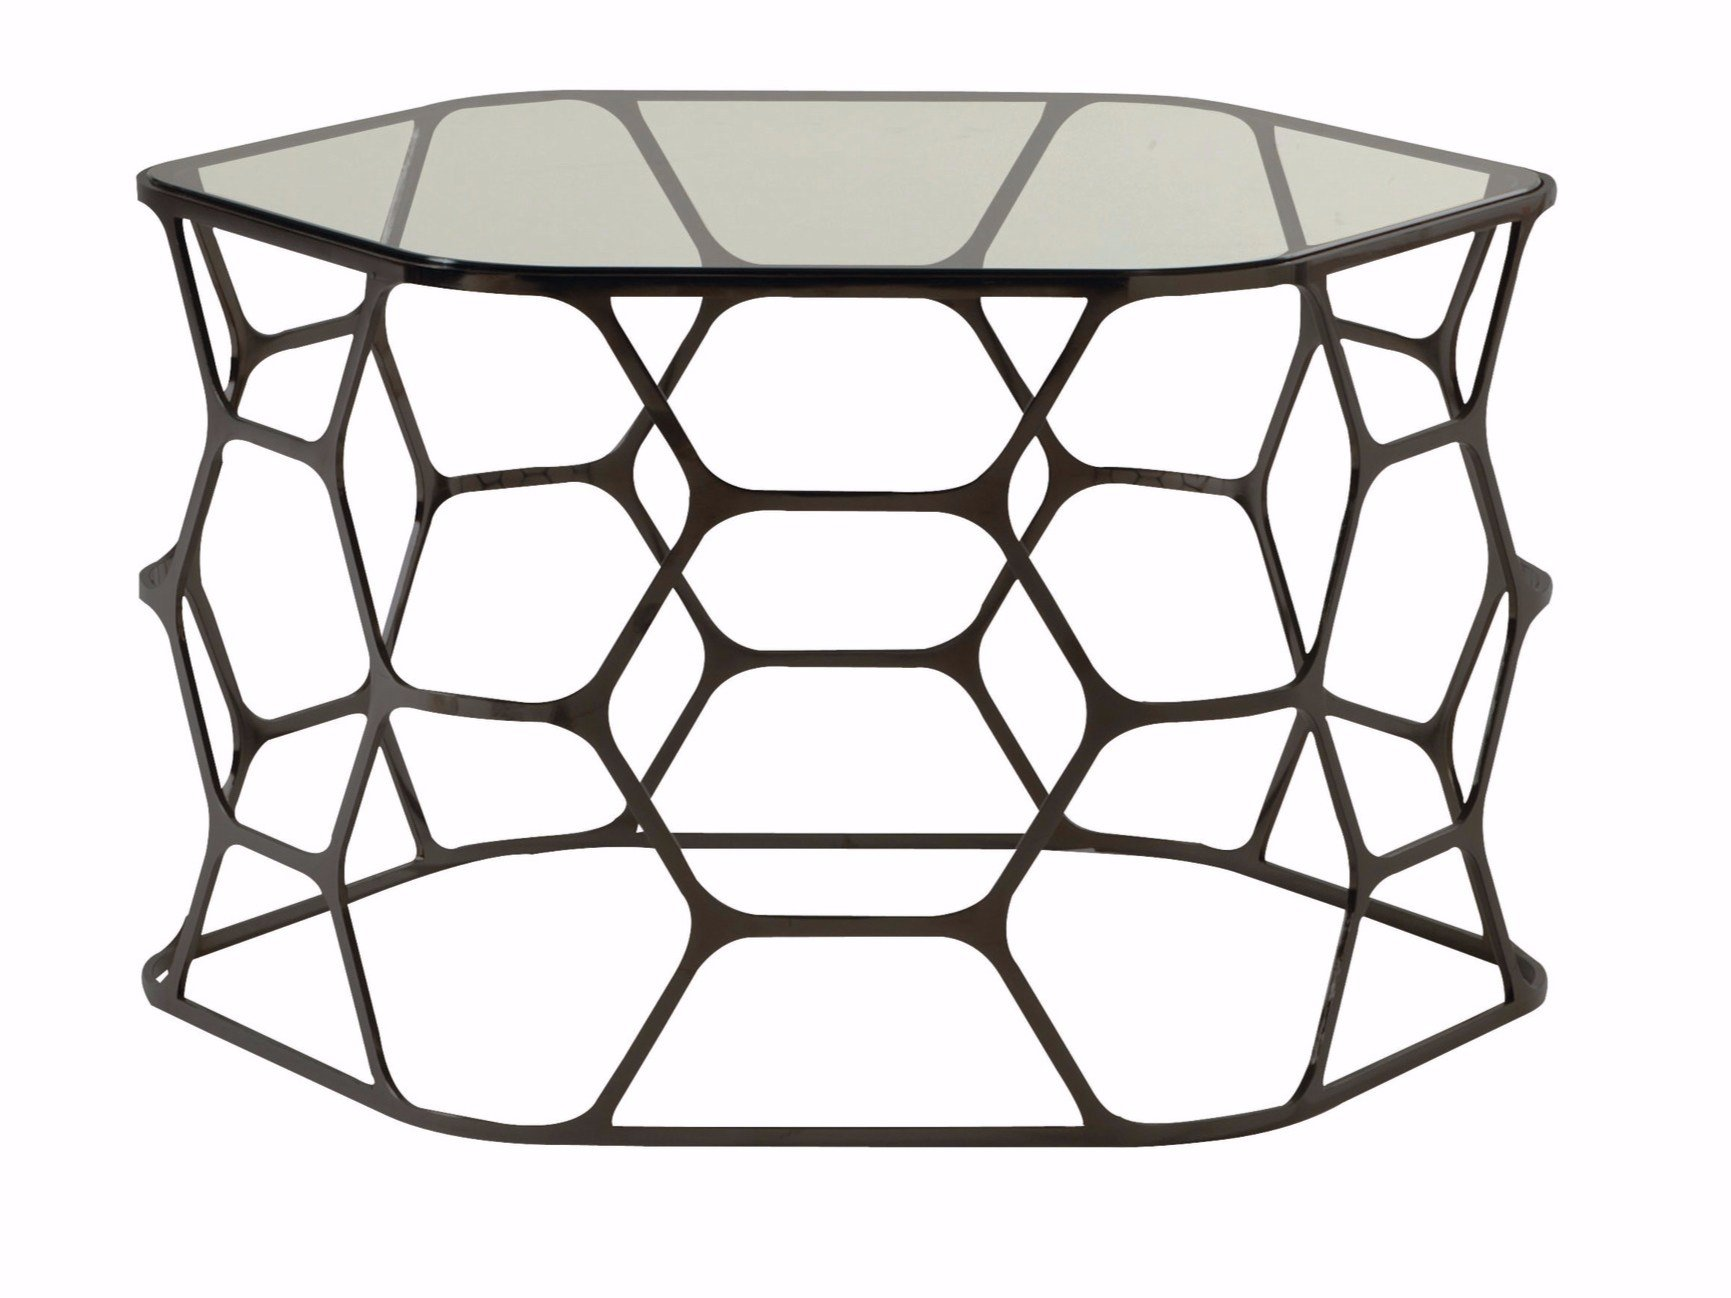 Glass and steel coffee table pollen by roche bobois design sacha lakic Roche bobois coffee table